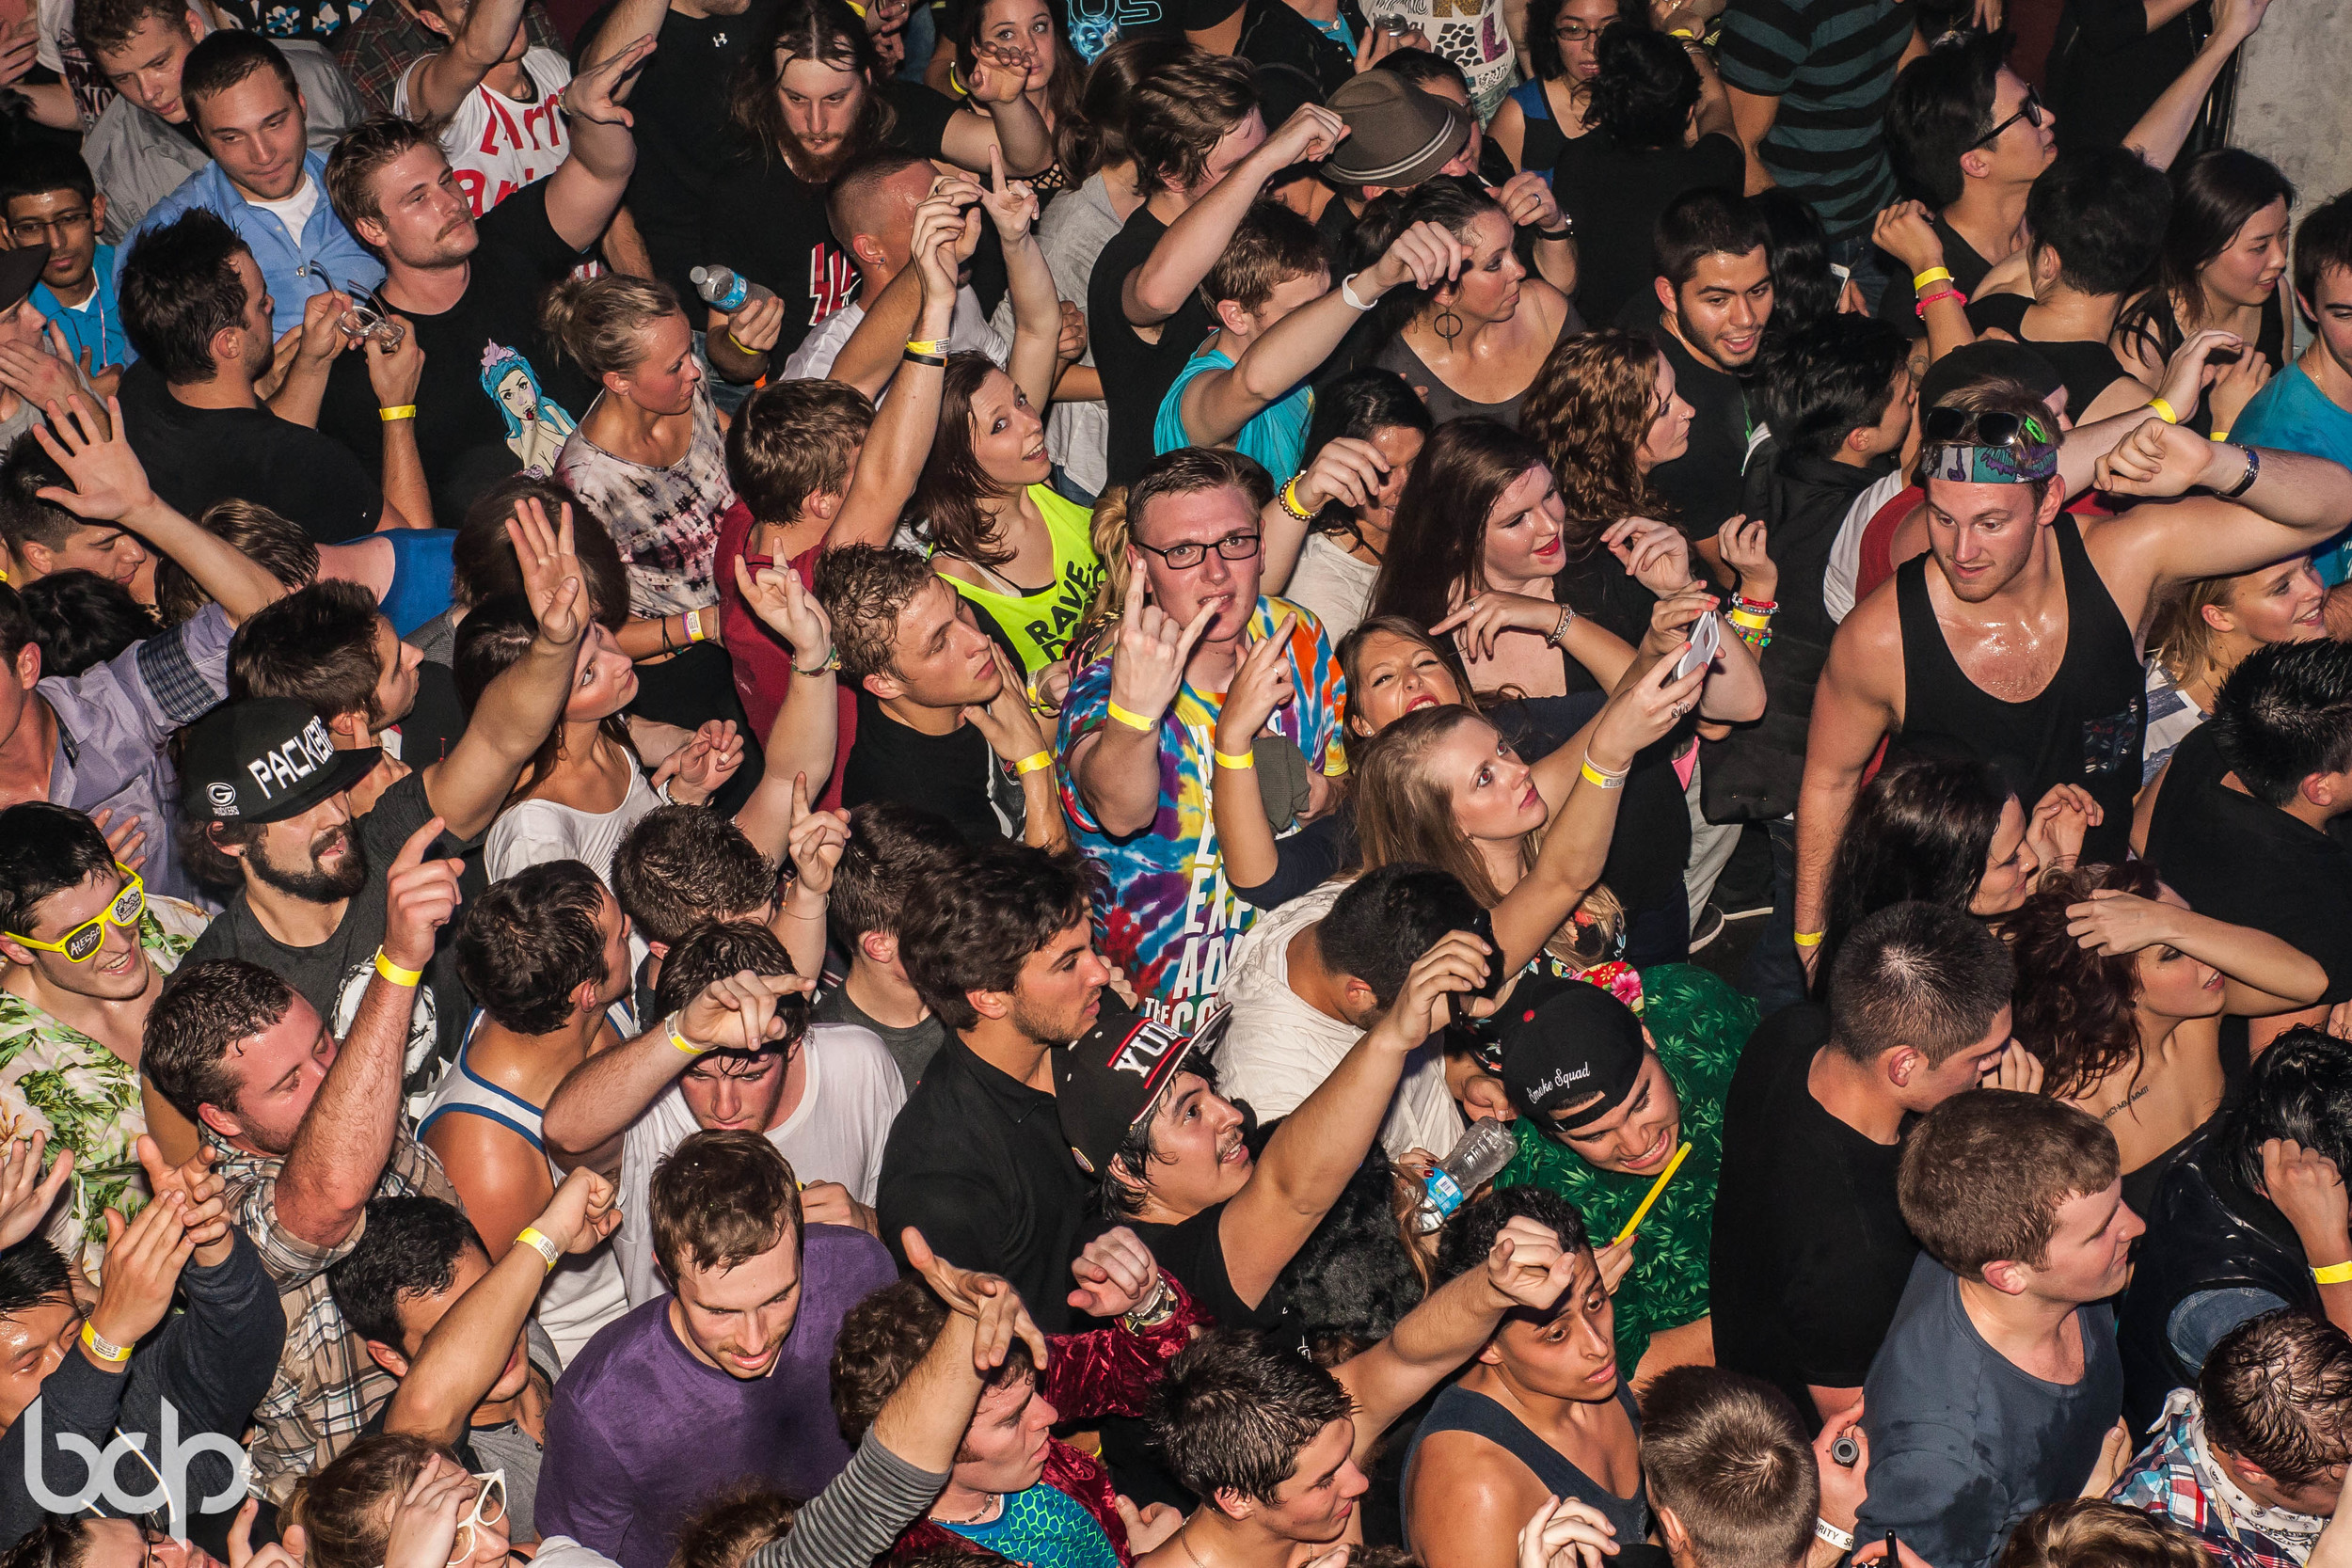 Aokify America Tour at Epic at Epic 110913 BDP-16.jpg